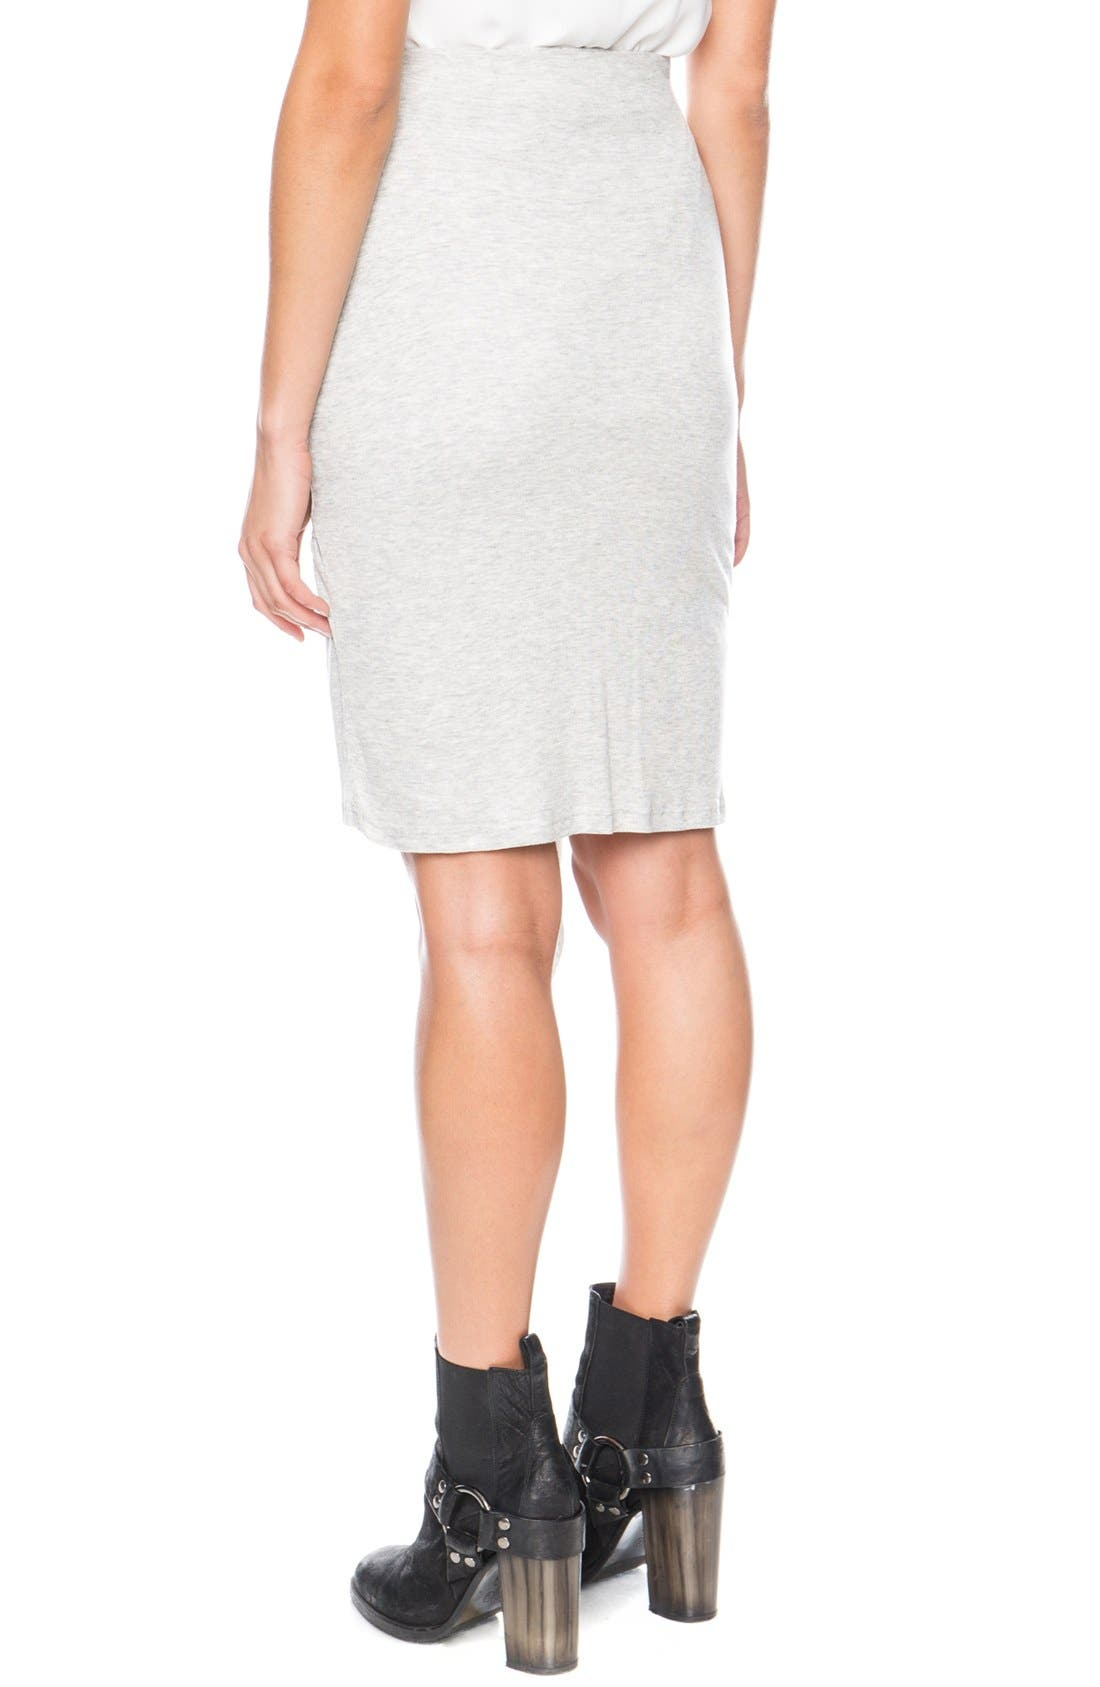 Alternate Image 2  - The Fifth Label 'Discovery' Knit Pencil Skirt